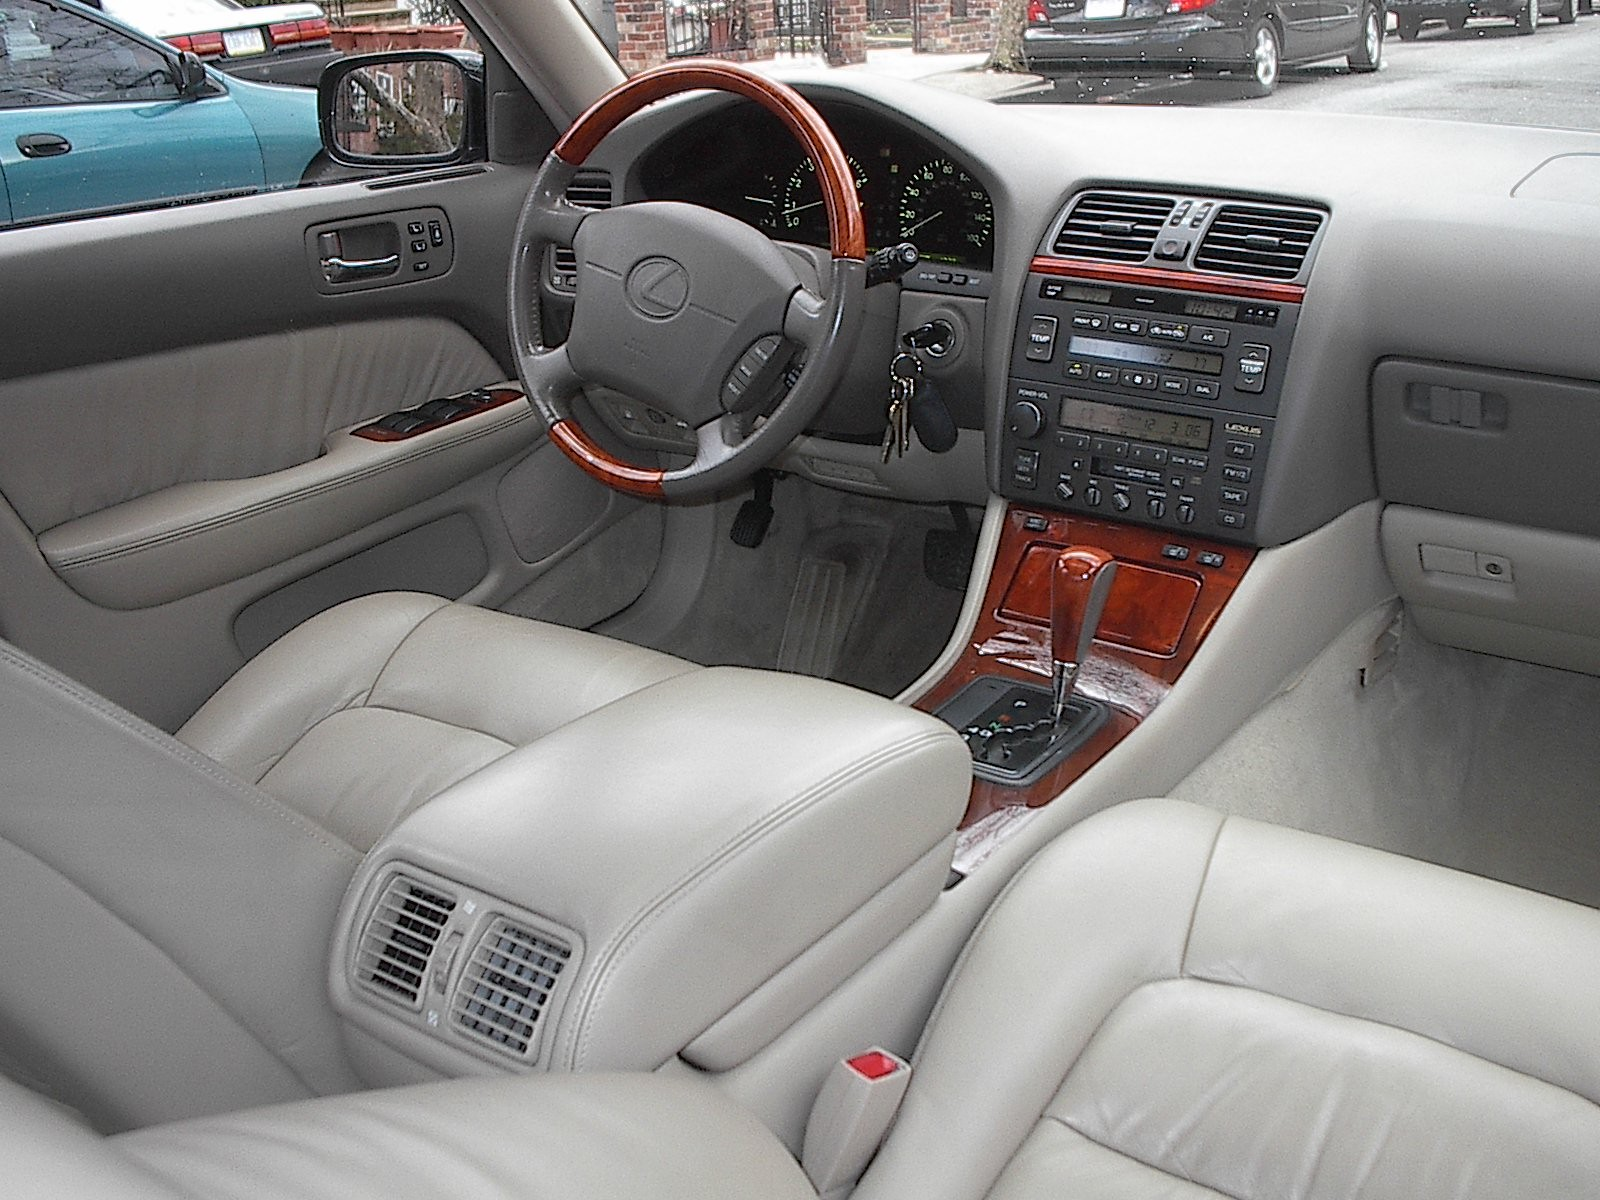 Description Lexus LS 400 model year 2000 interior.jpg